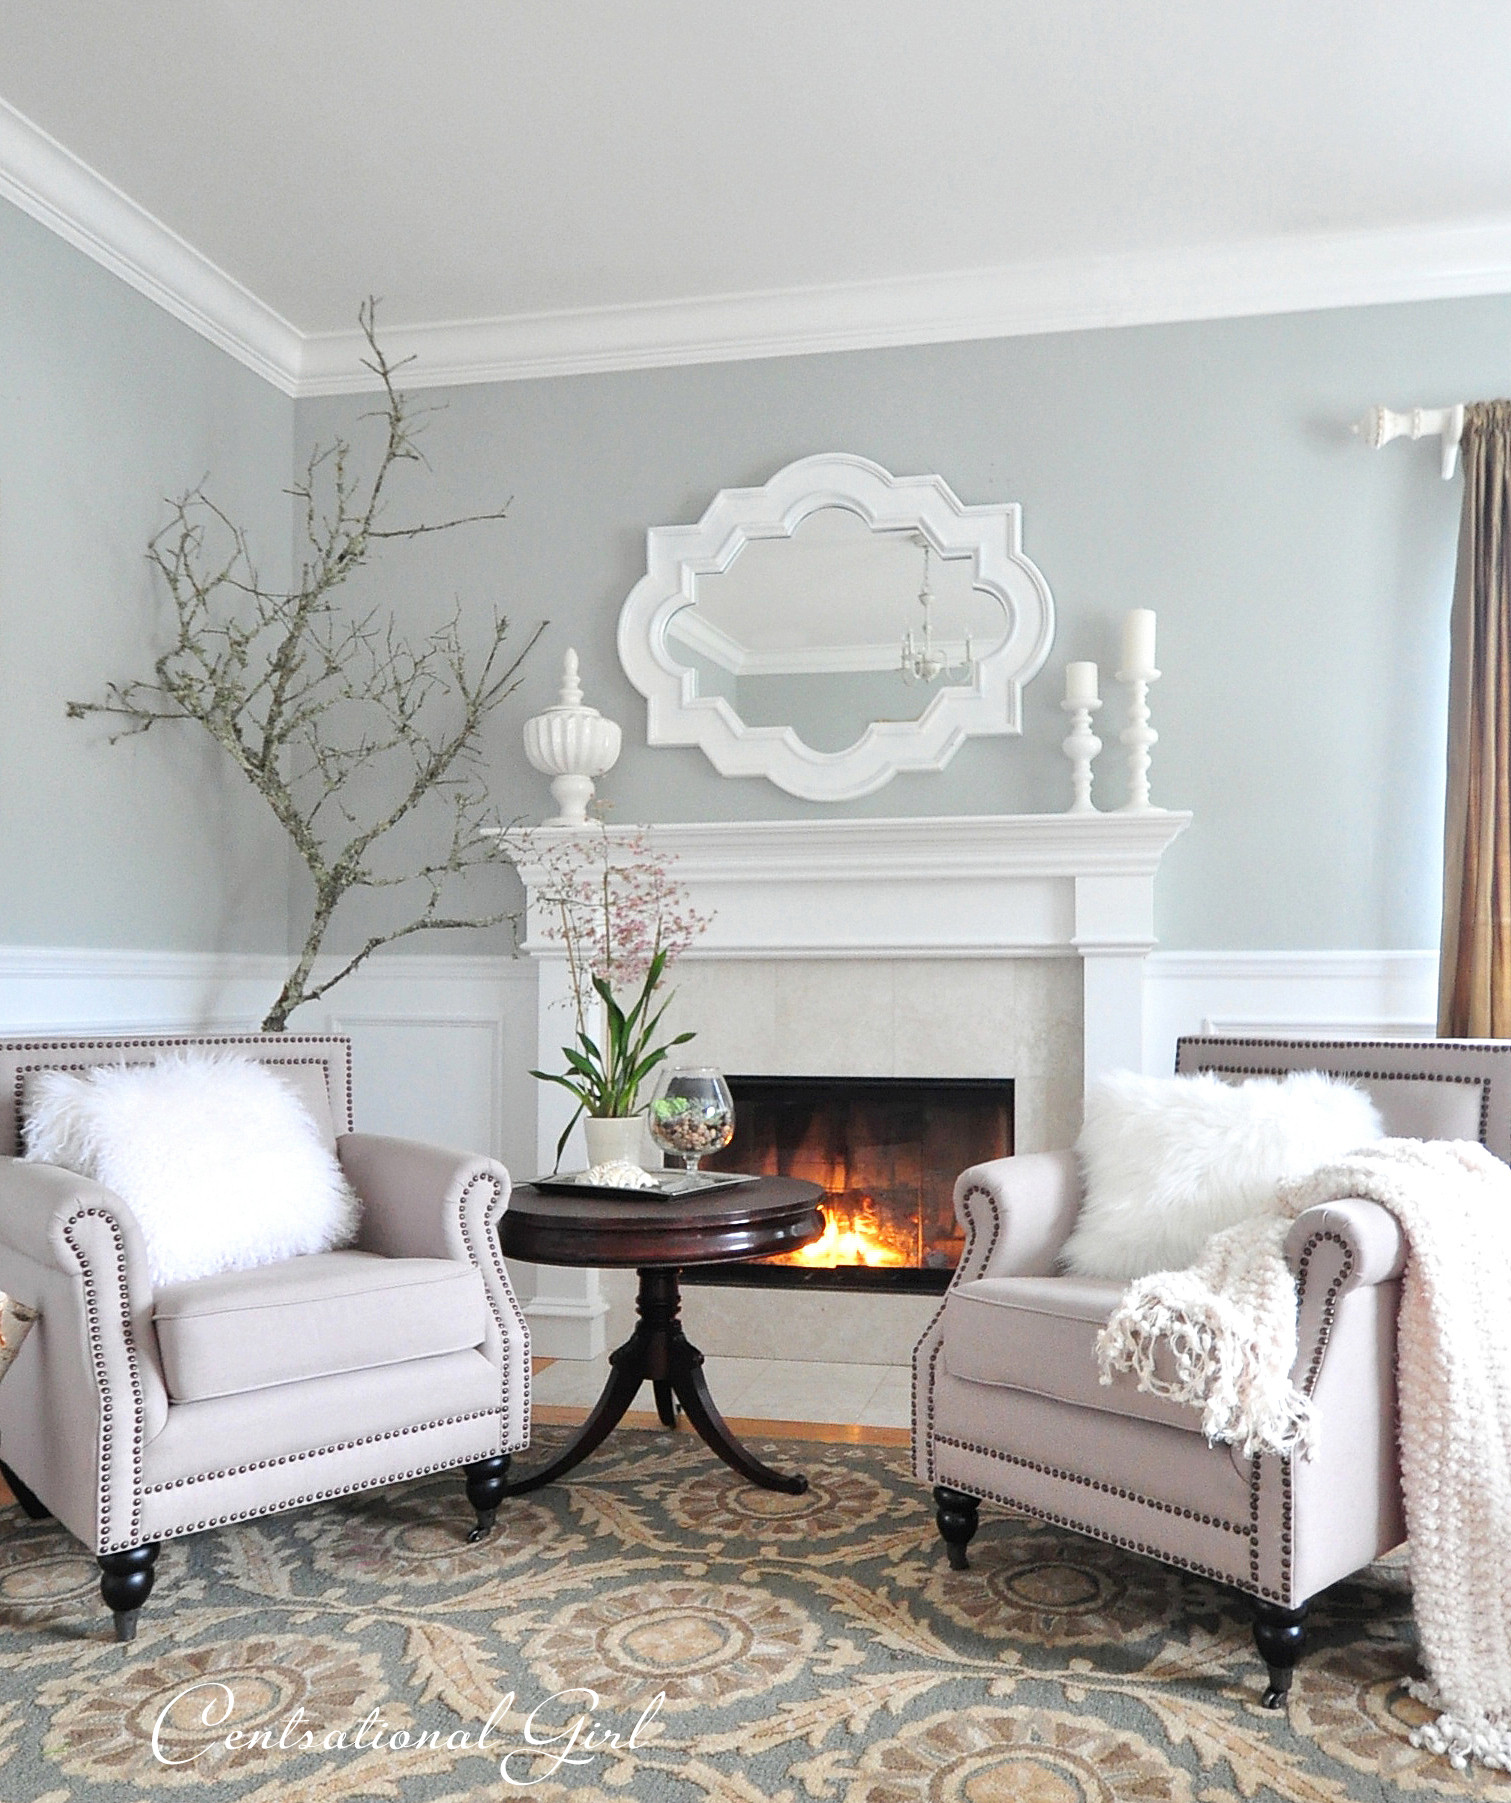 Best ideas about Light Grey Paint Colors . Save or Pin kates winter living room Now.